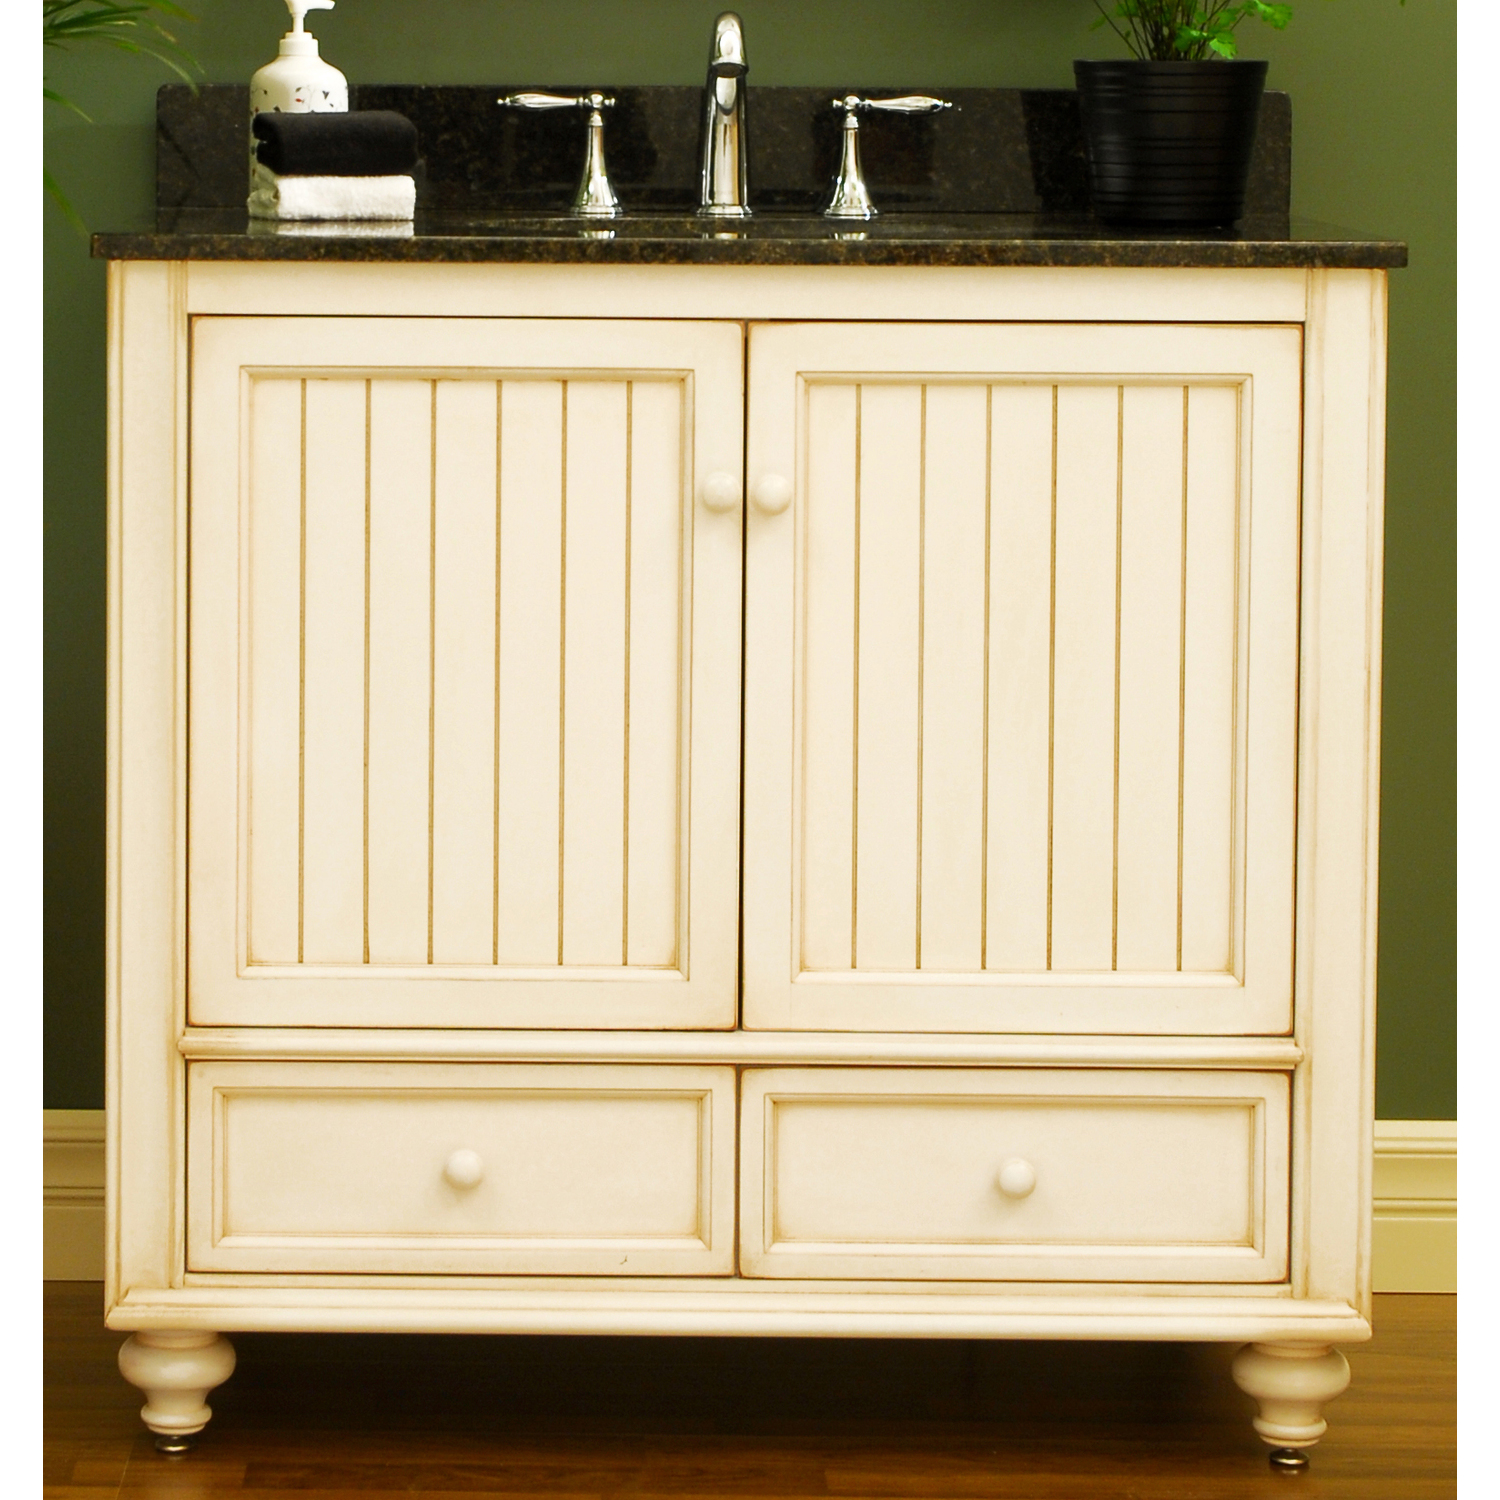 A selection of white bathroom vanities by sagehill designs for Bathroom vanities